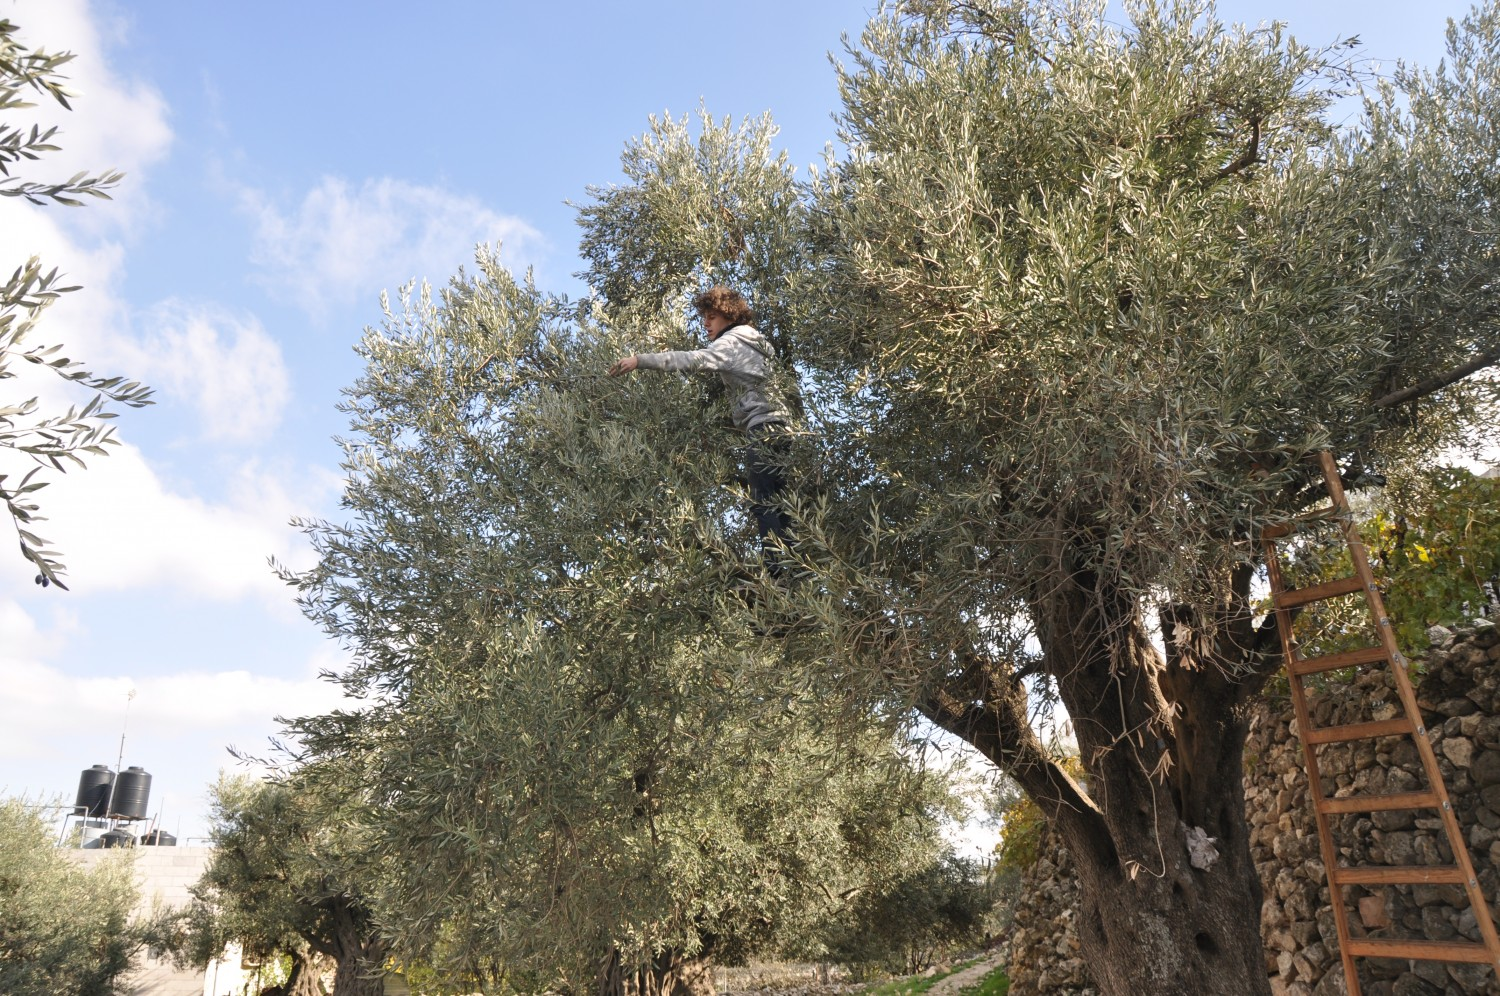 Tomas happily picking olives for Idris